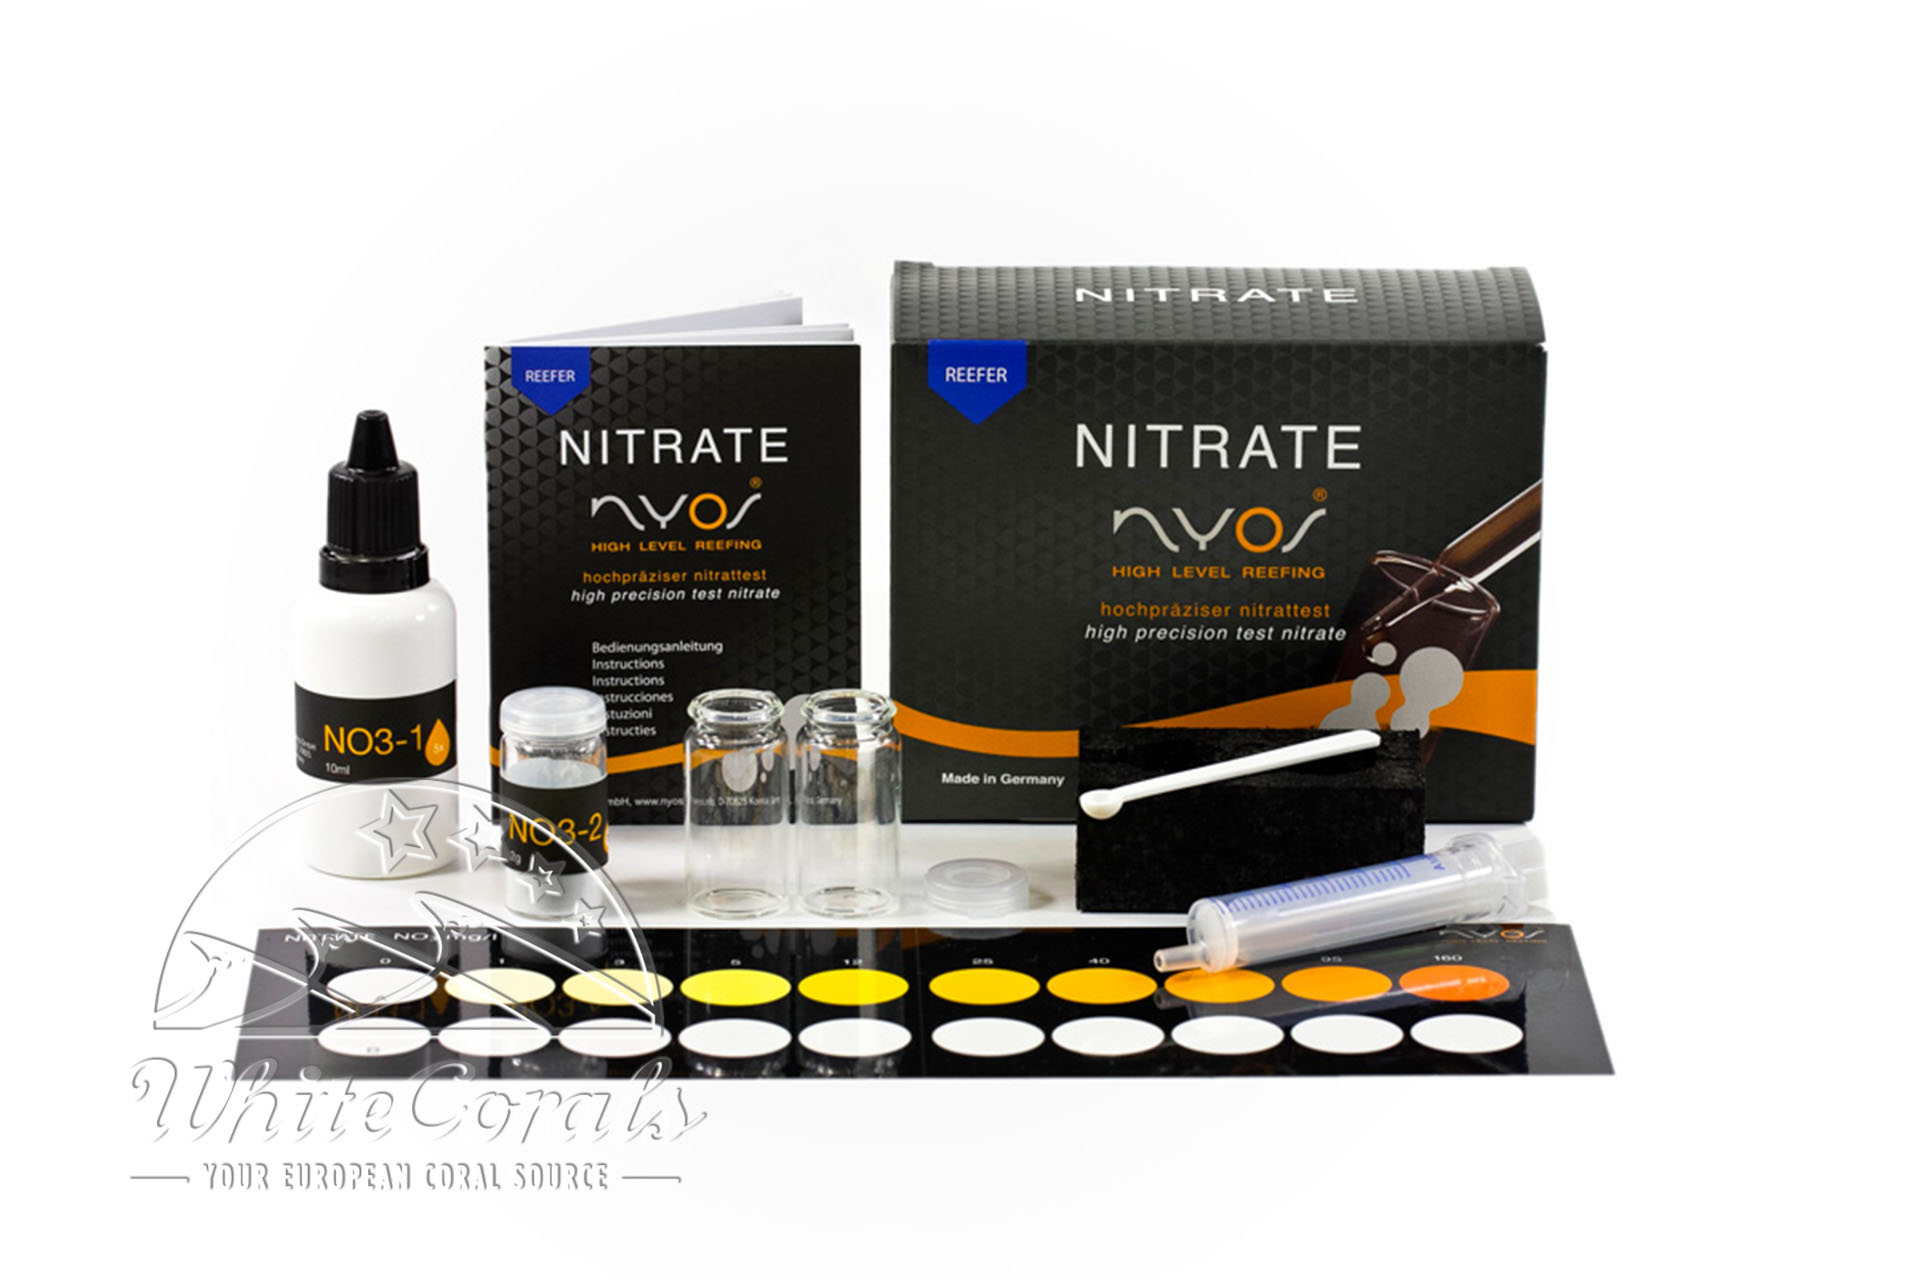 Nyos Testkit Nitrate Reefer water test